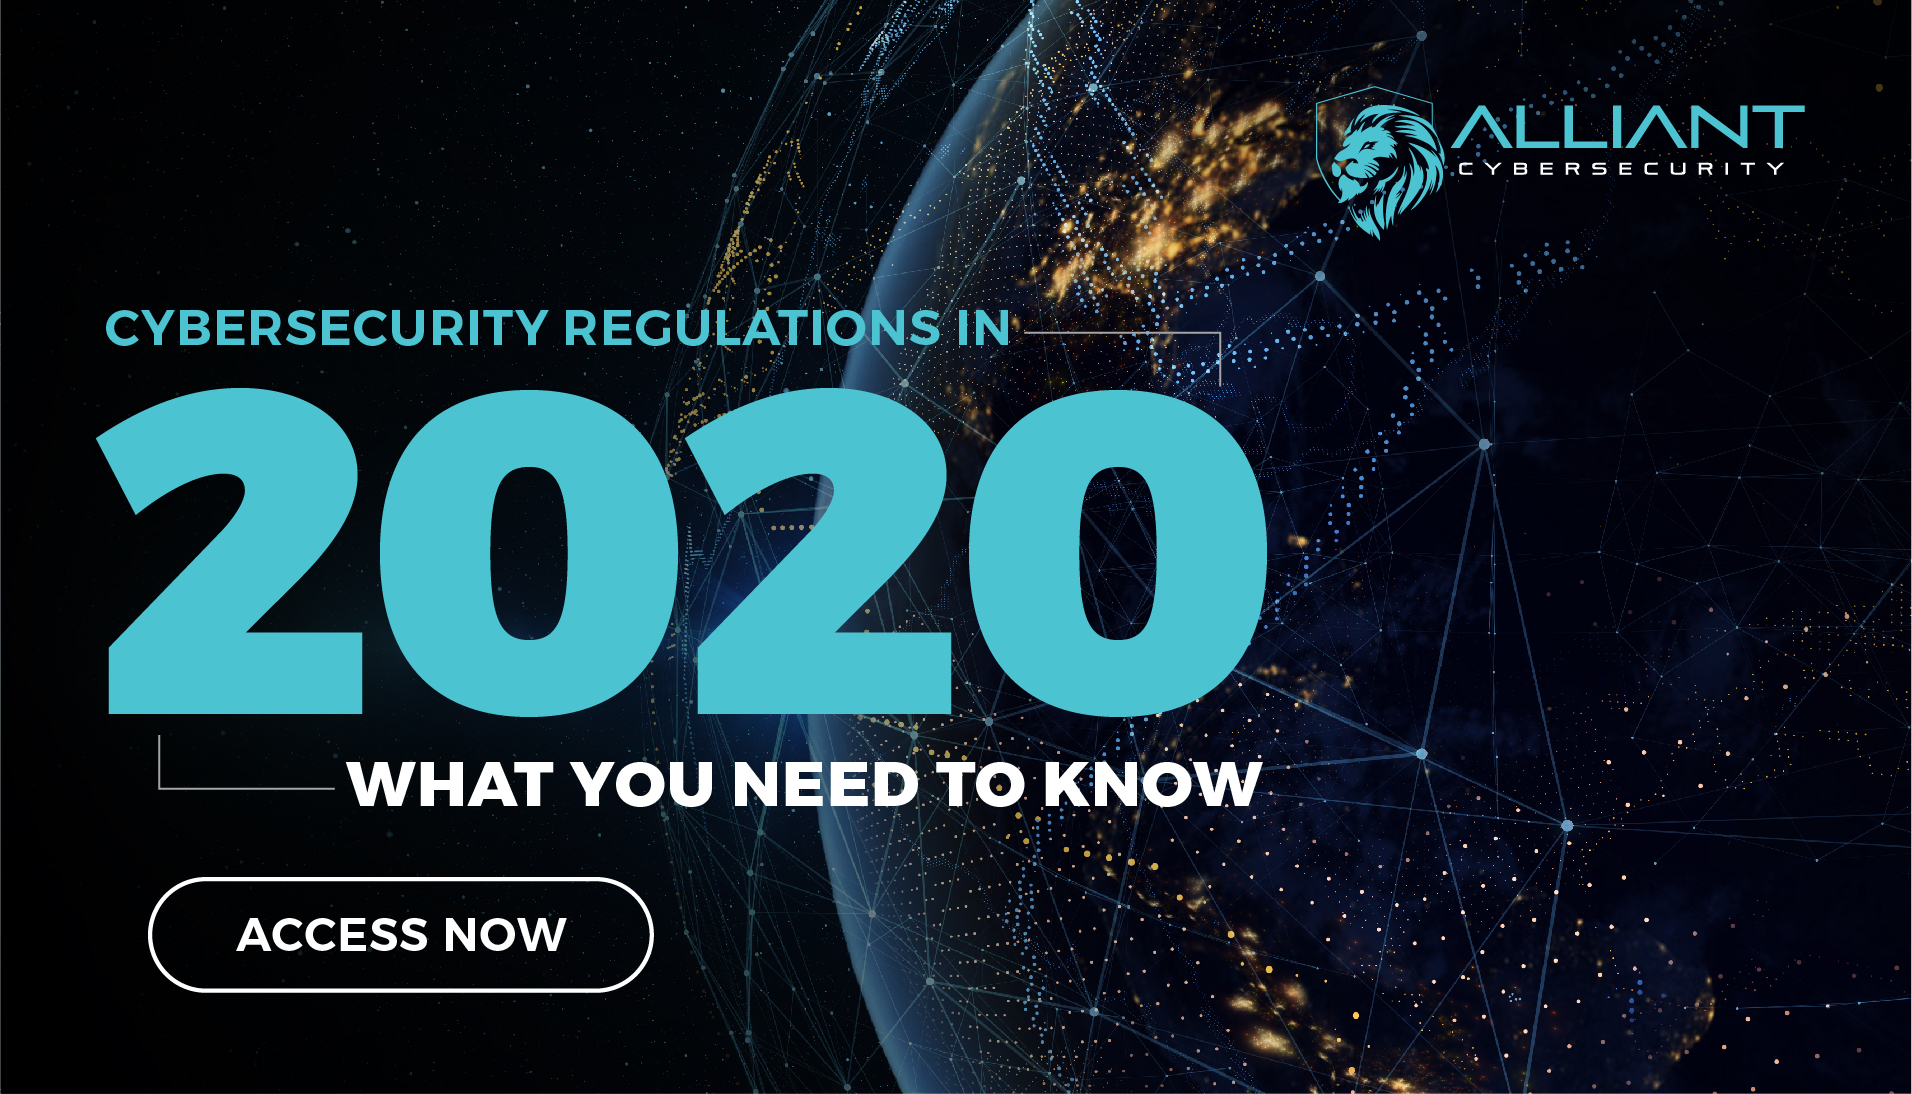 Cybersecurity Regulations in 2020: What you need to know